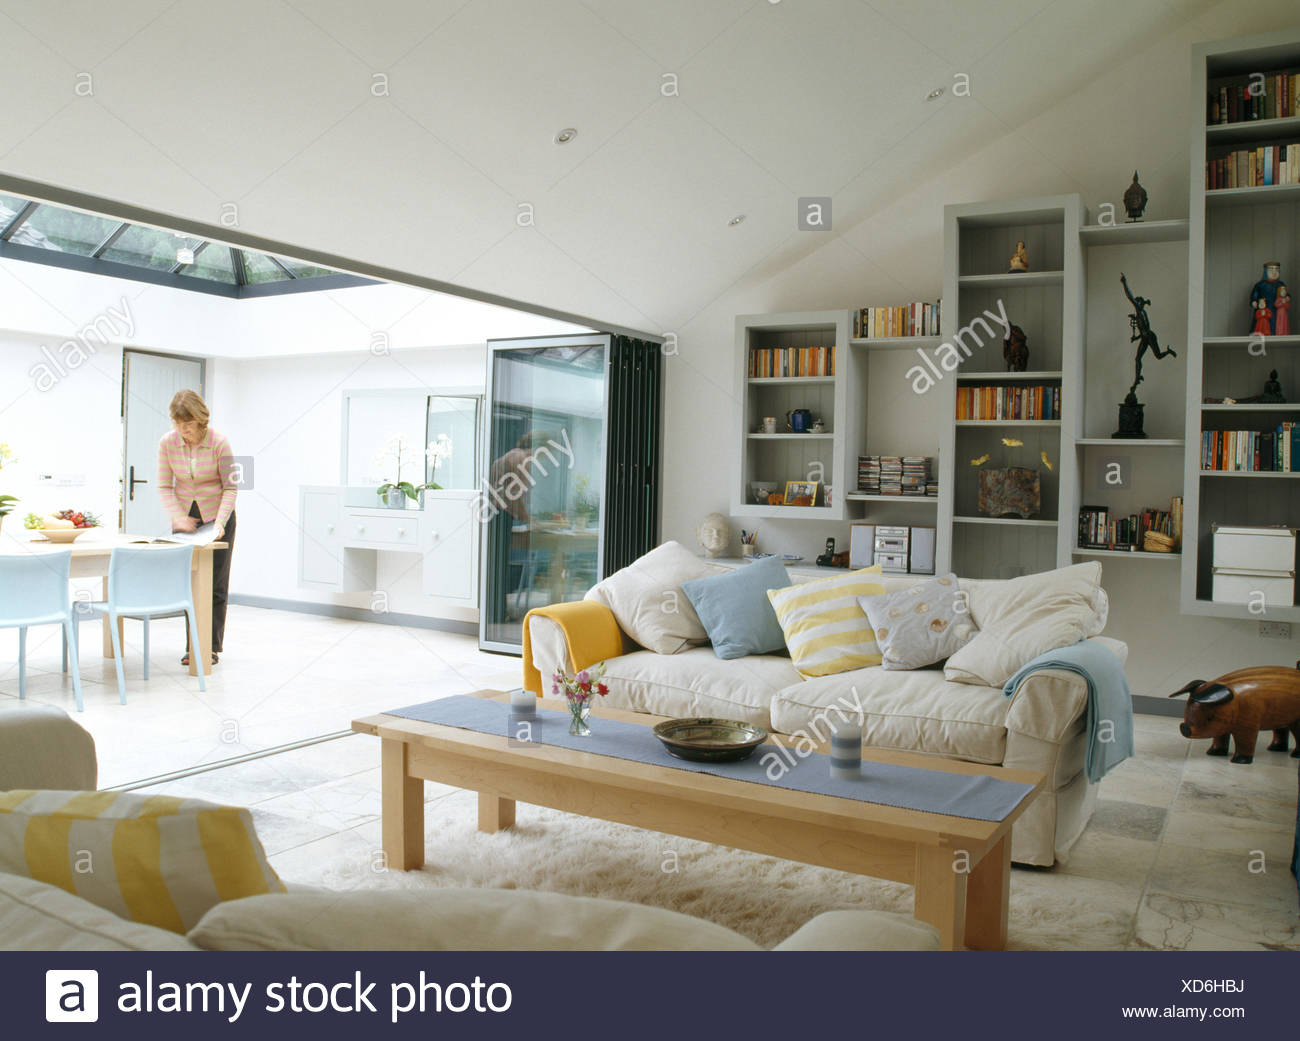 Charmant Modern Living Room With View Of Woman Setting The Table In Dining Area FOR  EDITORIAL USE ONLY